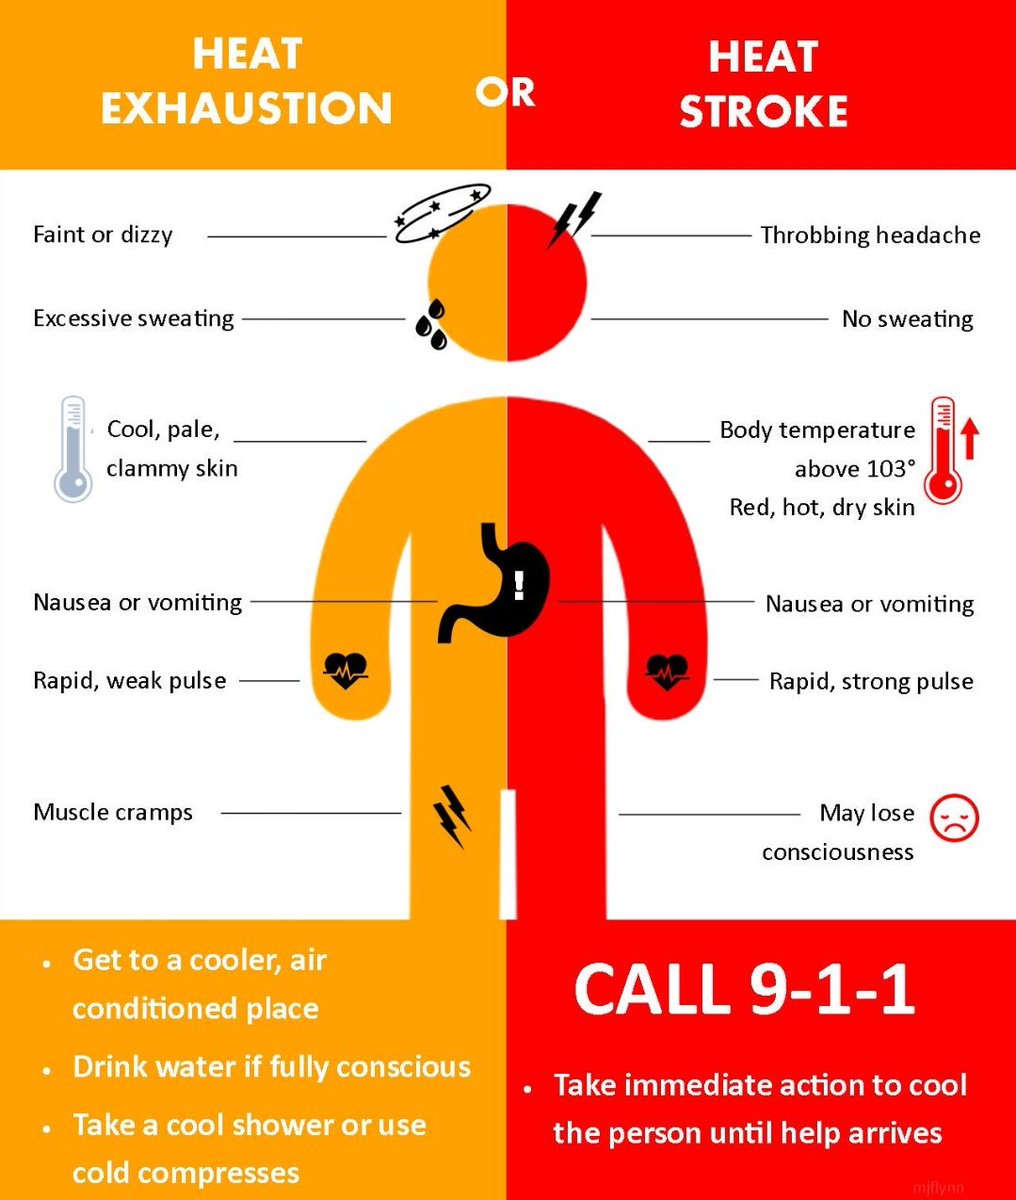 Know the signs of #heat related illness. Be a good neighbor & check on those vulnerable to excessive heat! #ReadyNJ https://t.co/daKocjdwsH